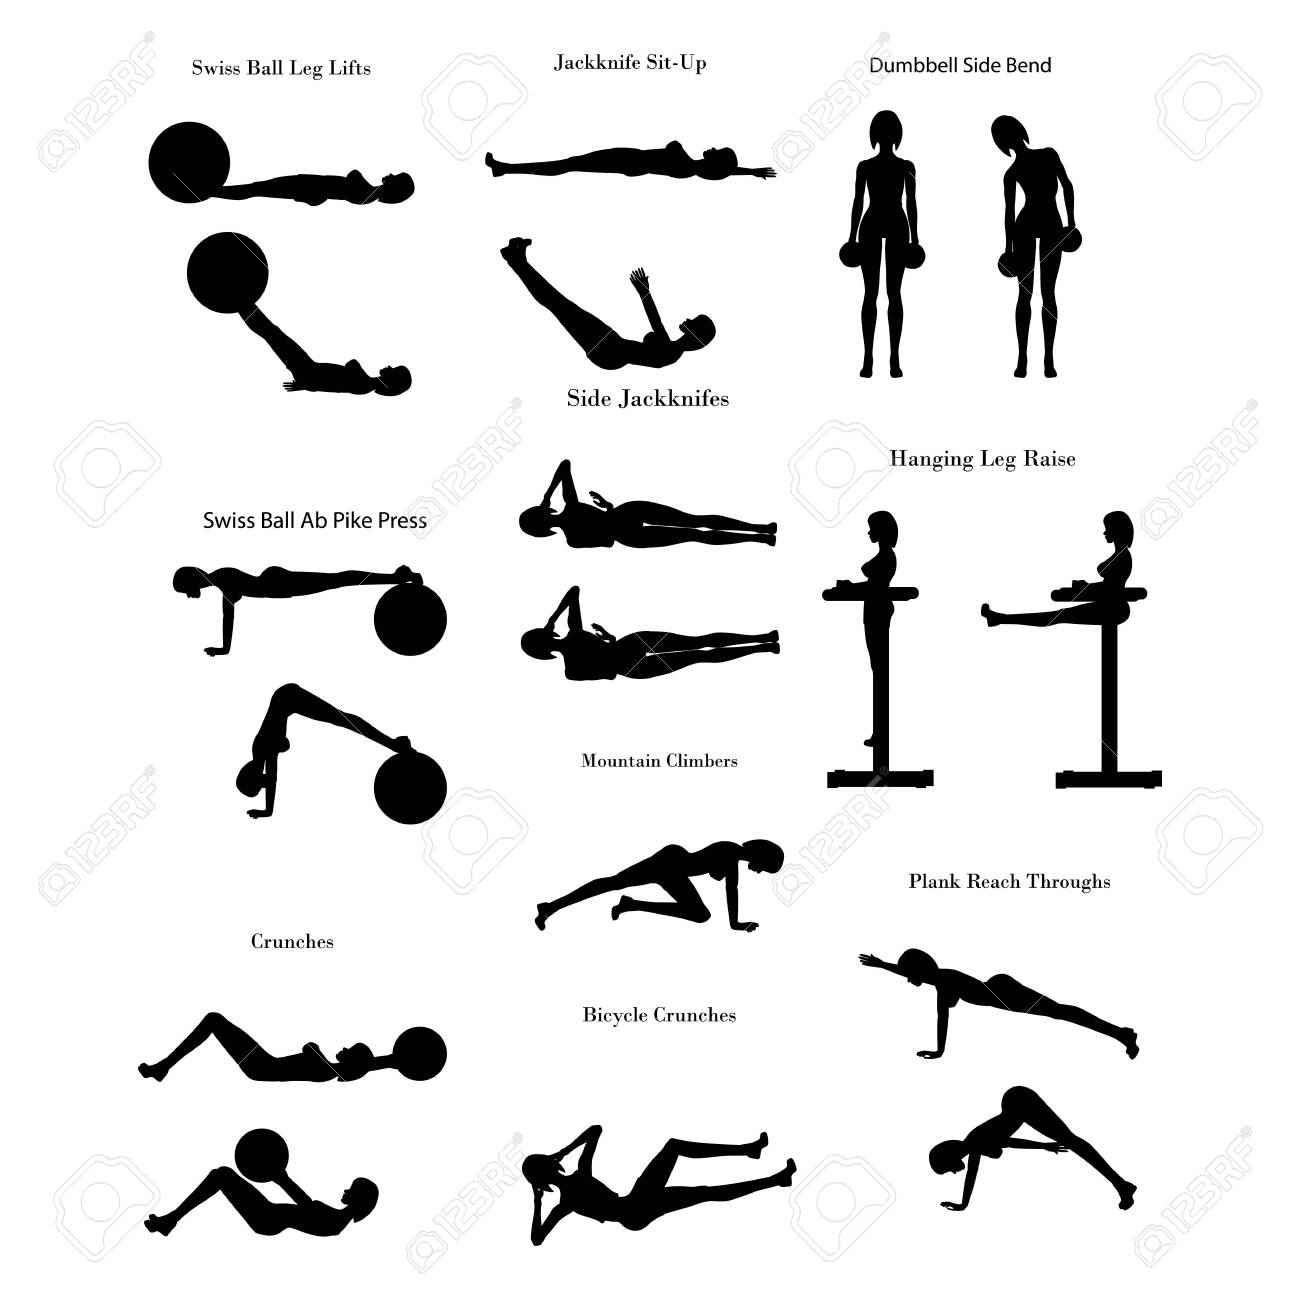 Workout exercise illustration silhouette - 131998902